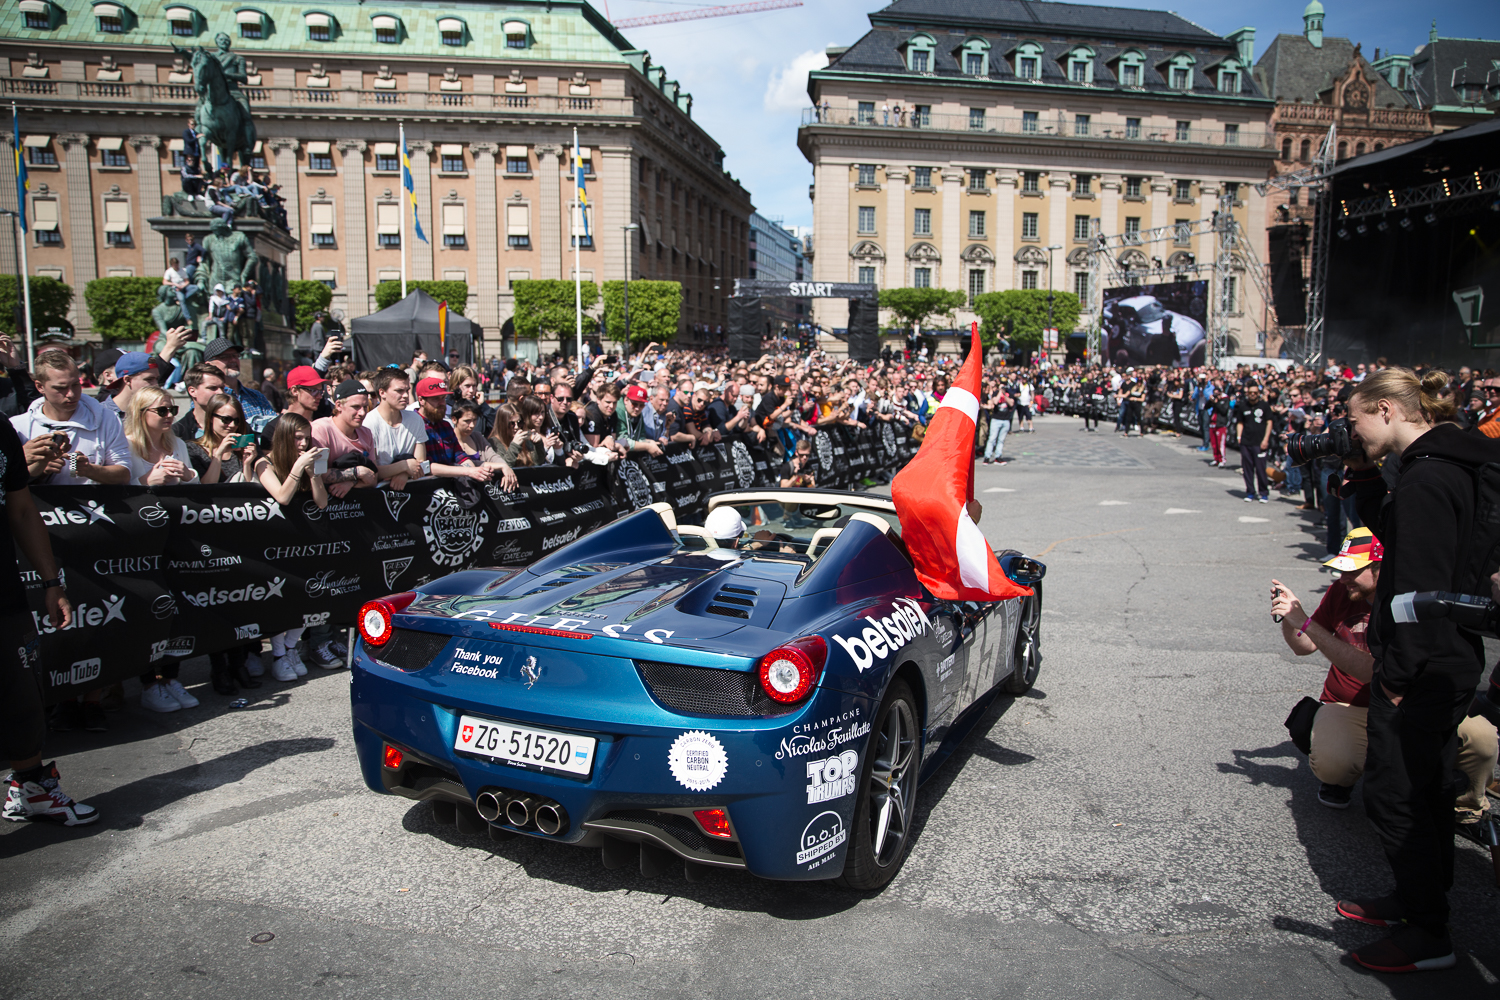 SMoores_15-05-24_Gumball 3000 Day 1_0513-Edit.jpg